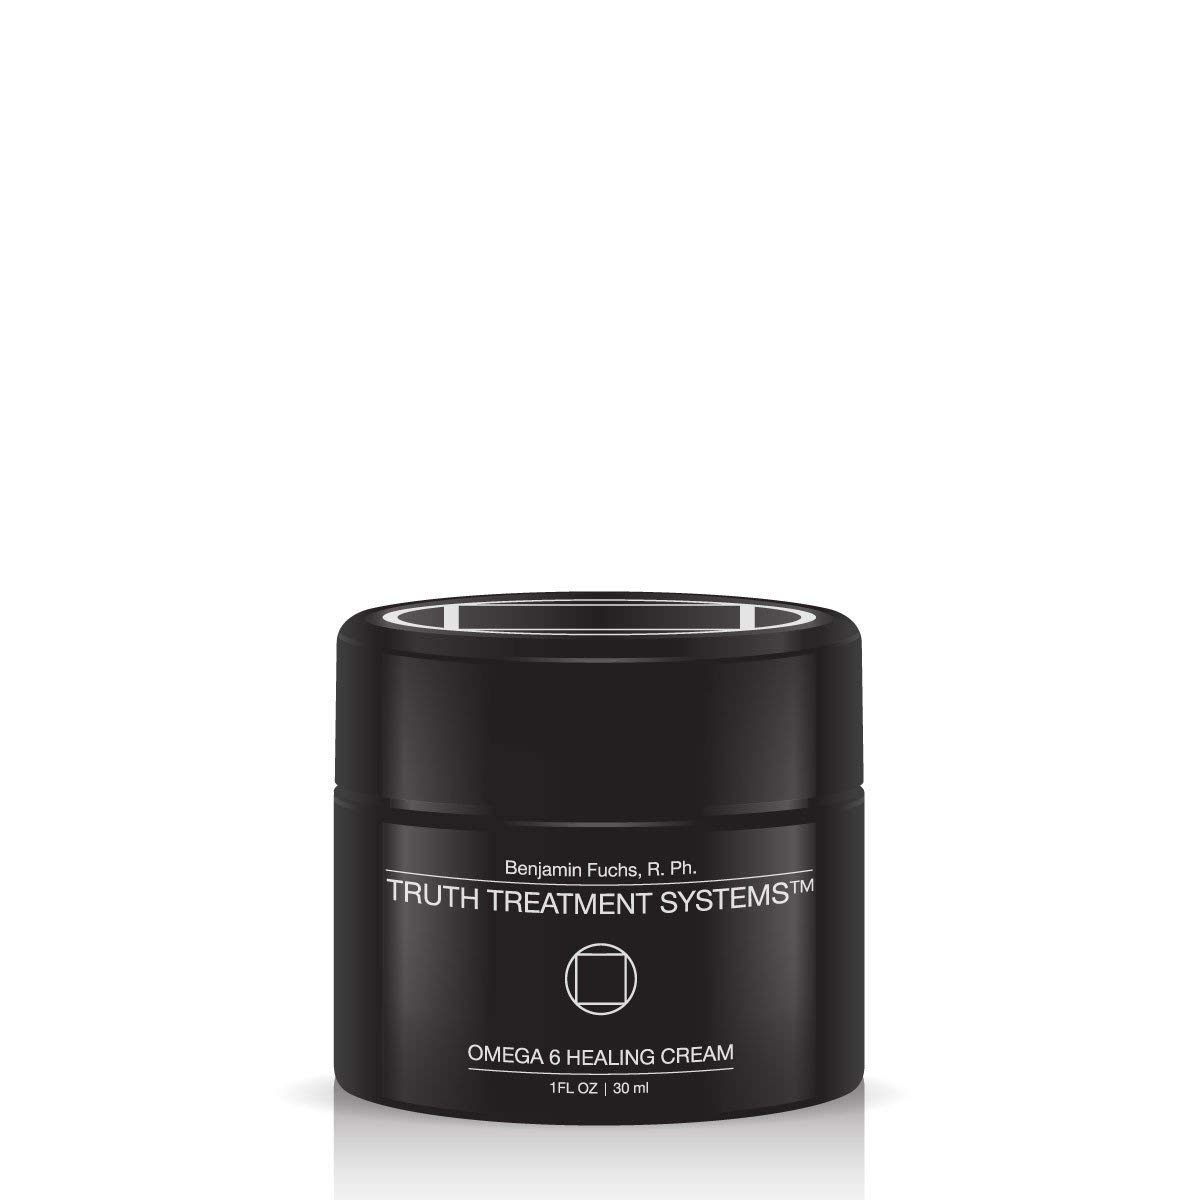 Omega 6 Healing Cream (30ML) by Benjamin Knight R.Ph. Truth Treatment Systems – Skin Repairing Balm with Vitamin C - Helps Prevent Scars - Rich Hydrating Lotion